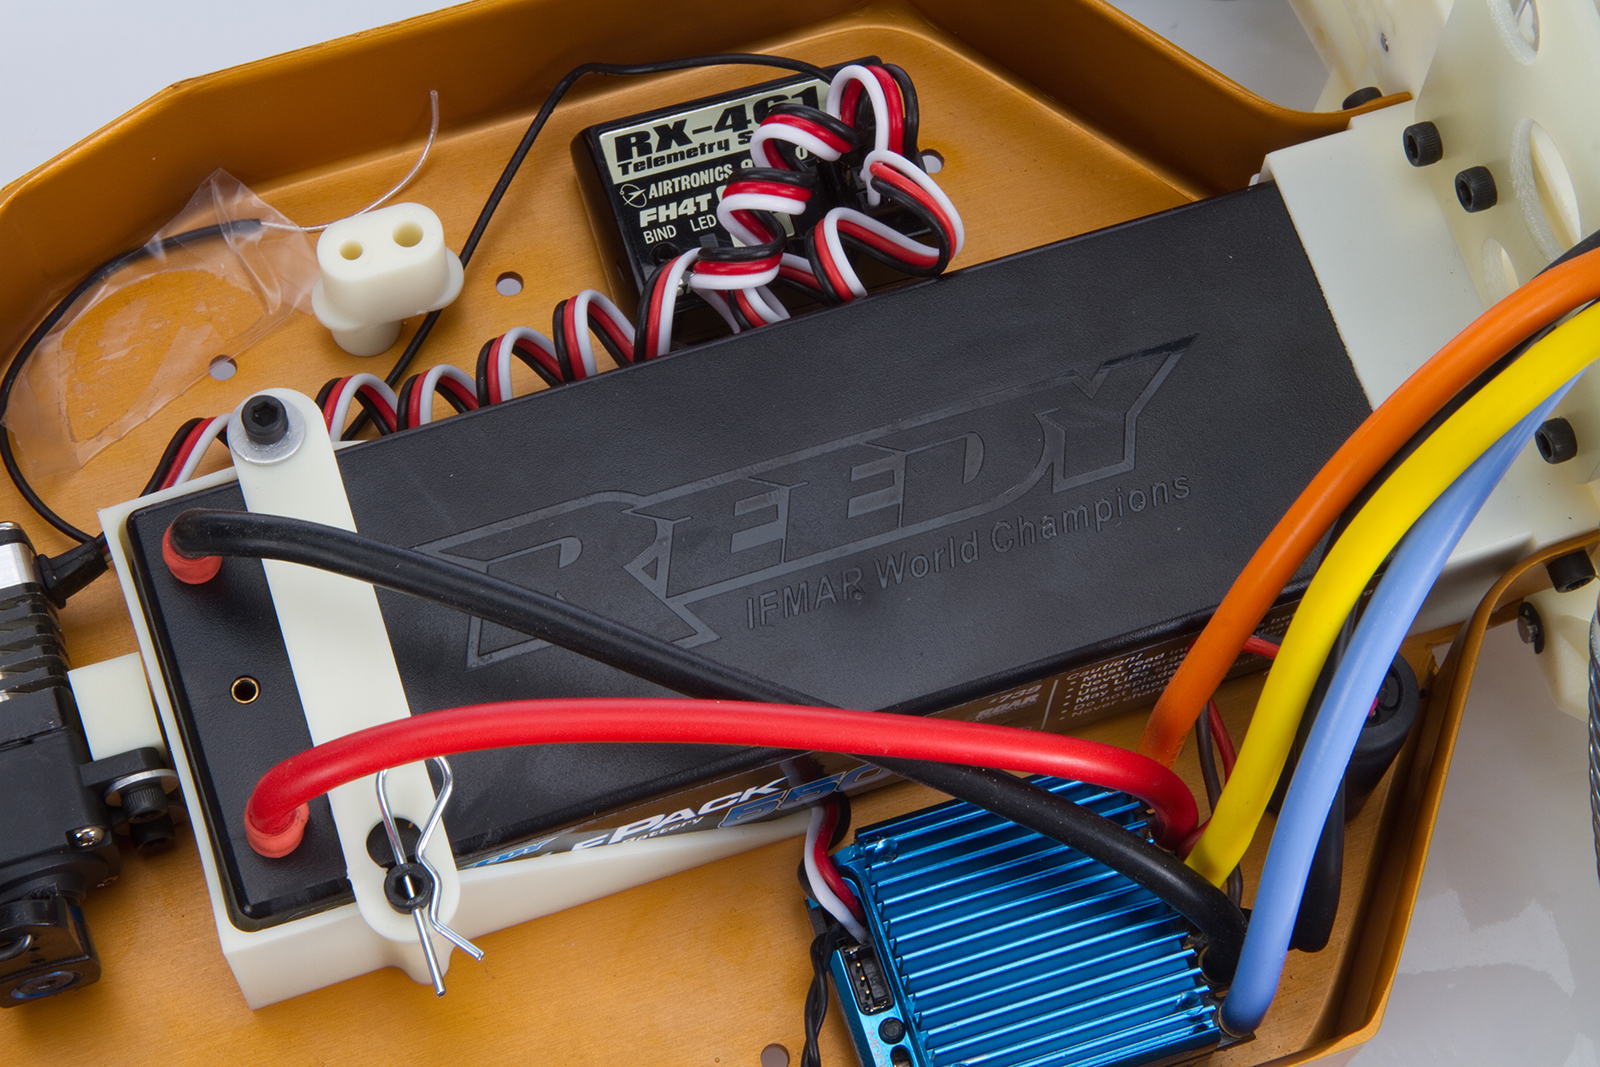 Rc 10 Wiring Diagram - 19.sg-dbd.de • Rc Helicopter Wiring Diagram on rc helicopter frame, rc helicopter engine, rc helicopter controller, rc helicopter volitation charger, rc helicopter cables, rc helicopter repair, rc helicopter crash, rc truck wiring, rc helicopters for beginners, rc receiver wiring, rc helicopter girls, rc helicopter motors, rc helicopter diagram, rc helicopter battery, rc helicopter blue, rc aircraft wiring, rc helicopter construction, rc servo wiring, rc battery wiring, rc helicopter fan,